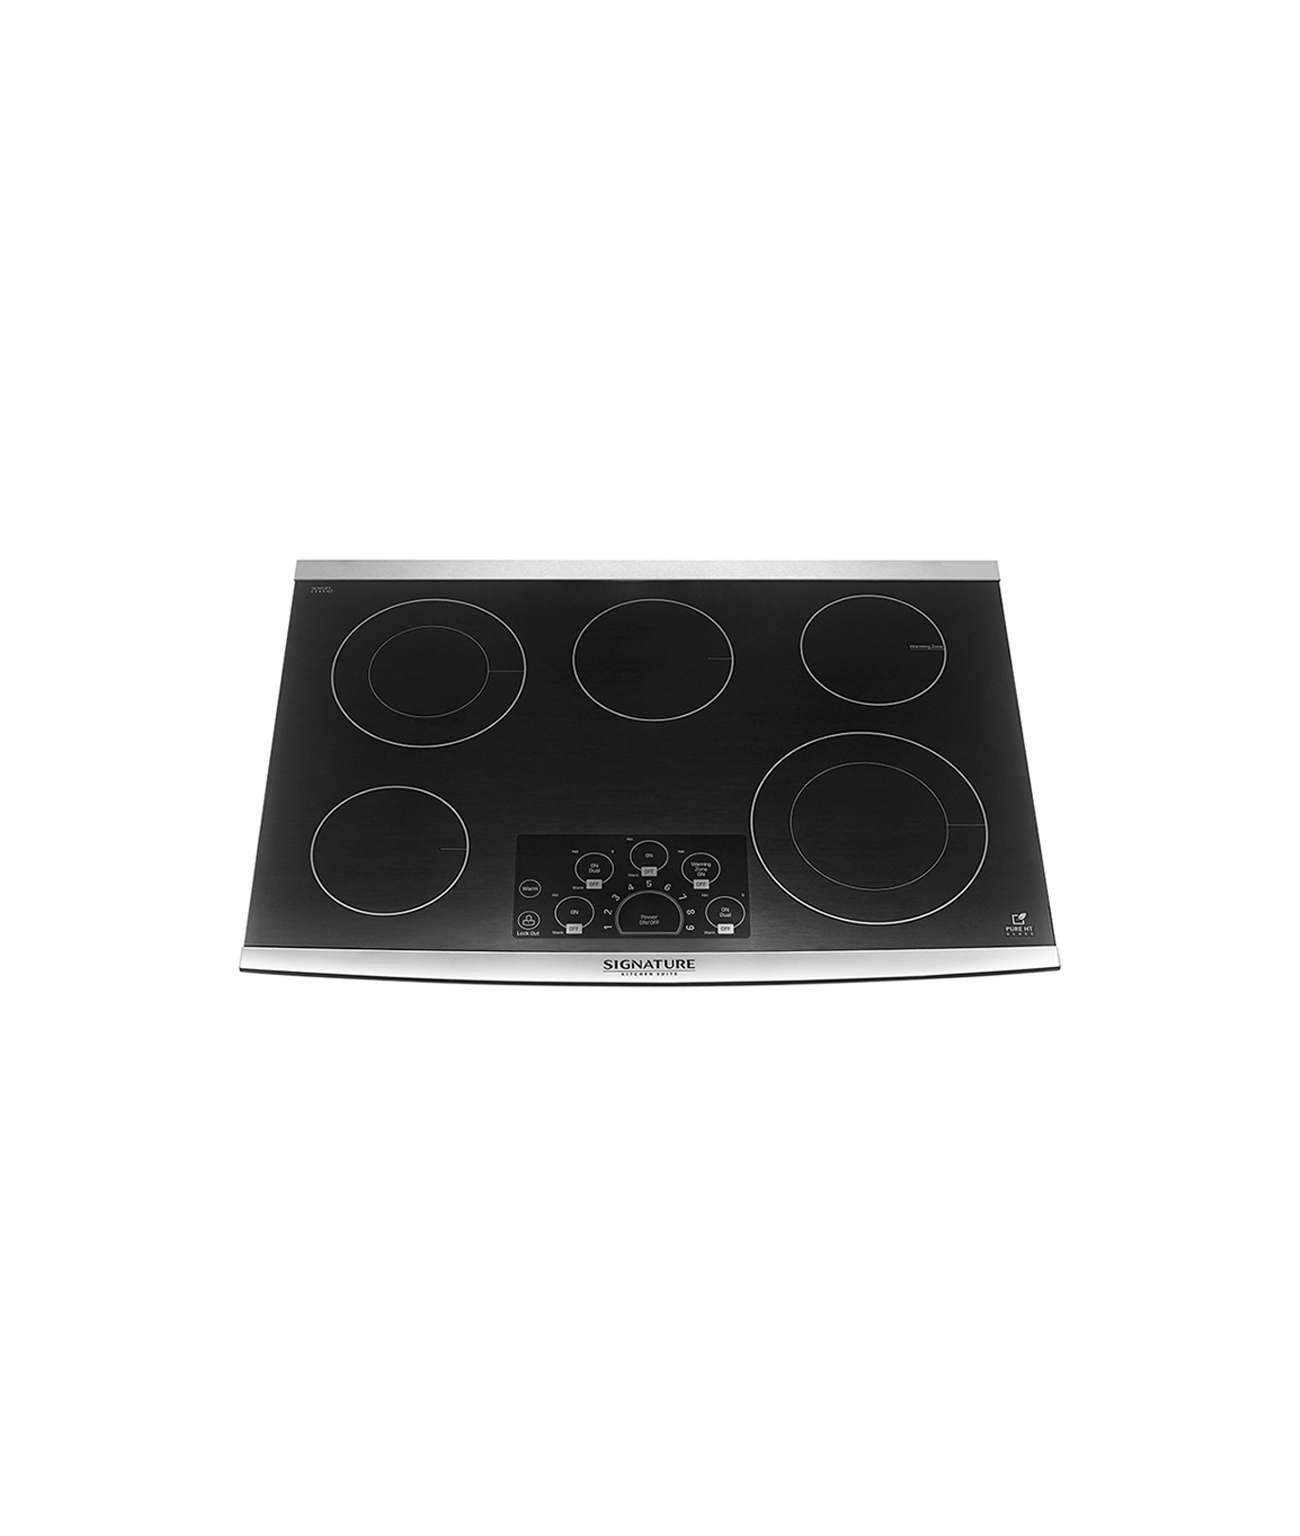 30-inch Electric Cooktop from Signature Kitchen Suite